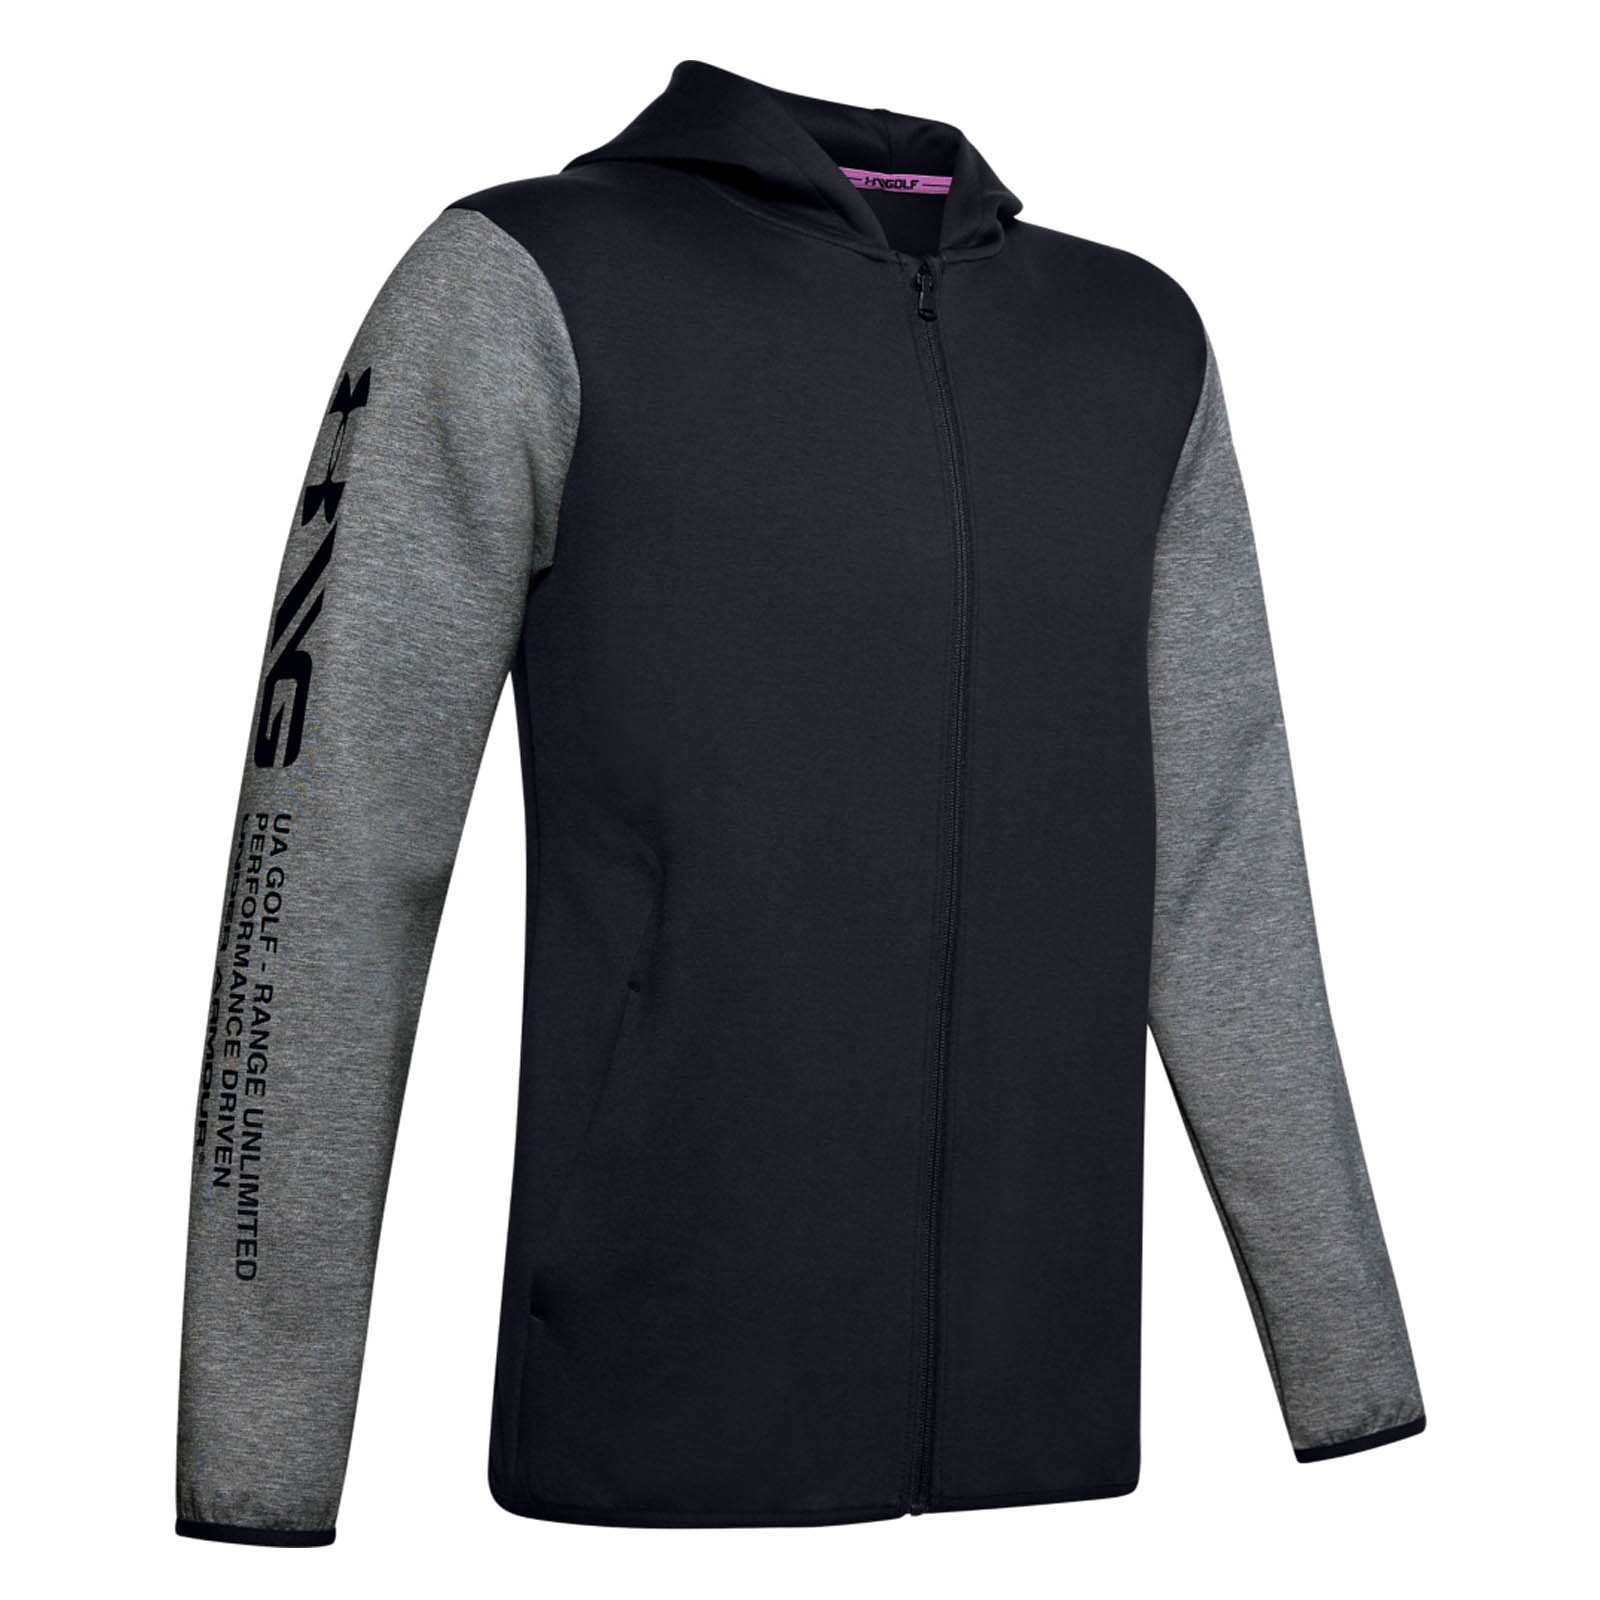 Under Armour Range Unlimited Storm Hoodie